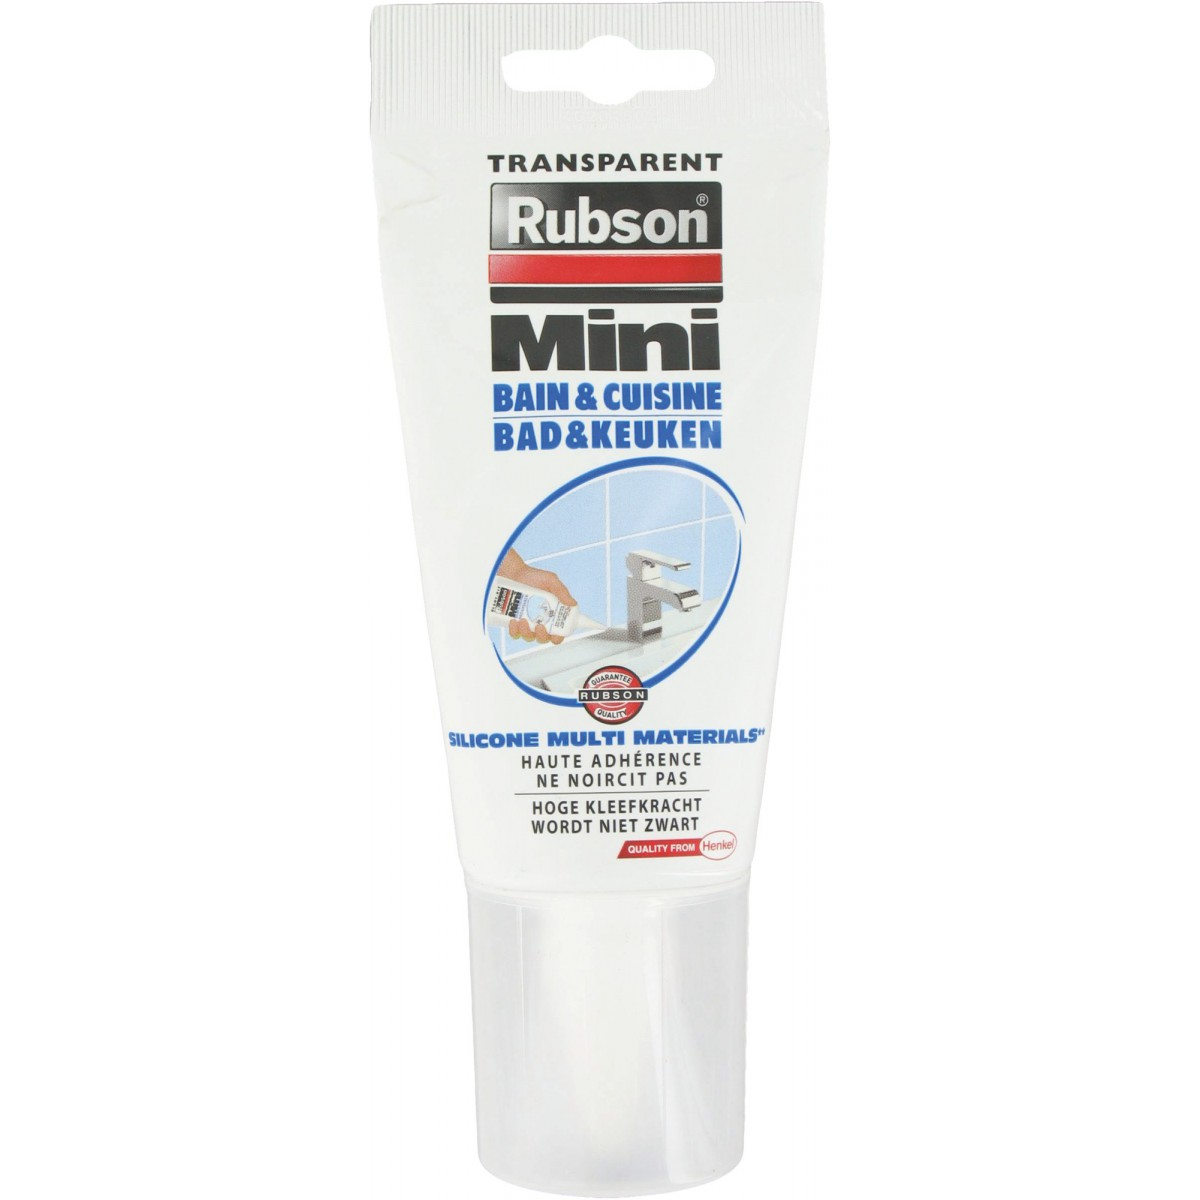 Mastic bain et cuisine Rubson - Tube 150 ml - Transparent